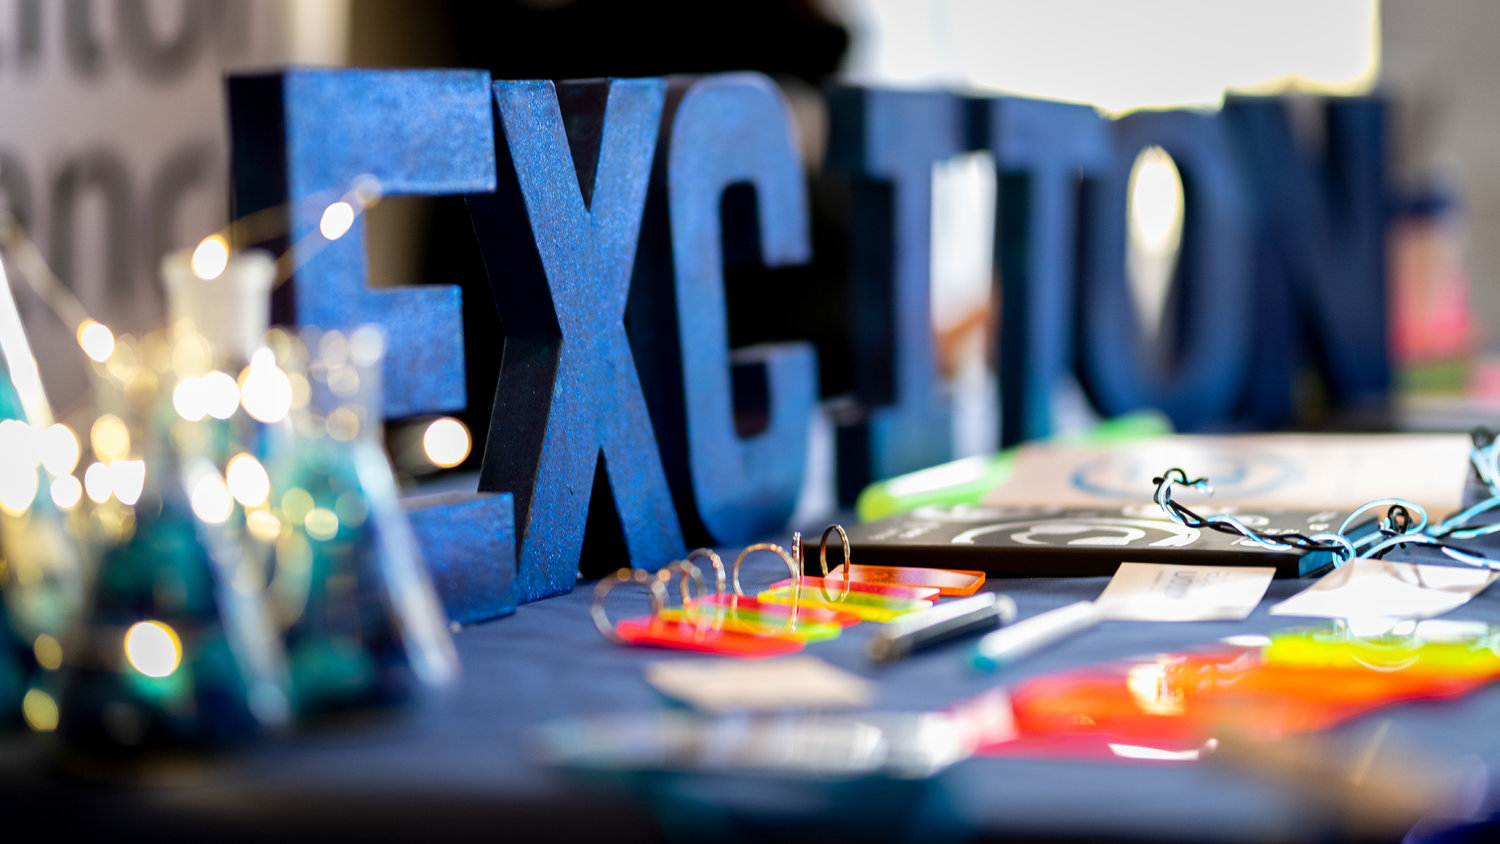 Exciton Science Block Letters